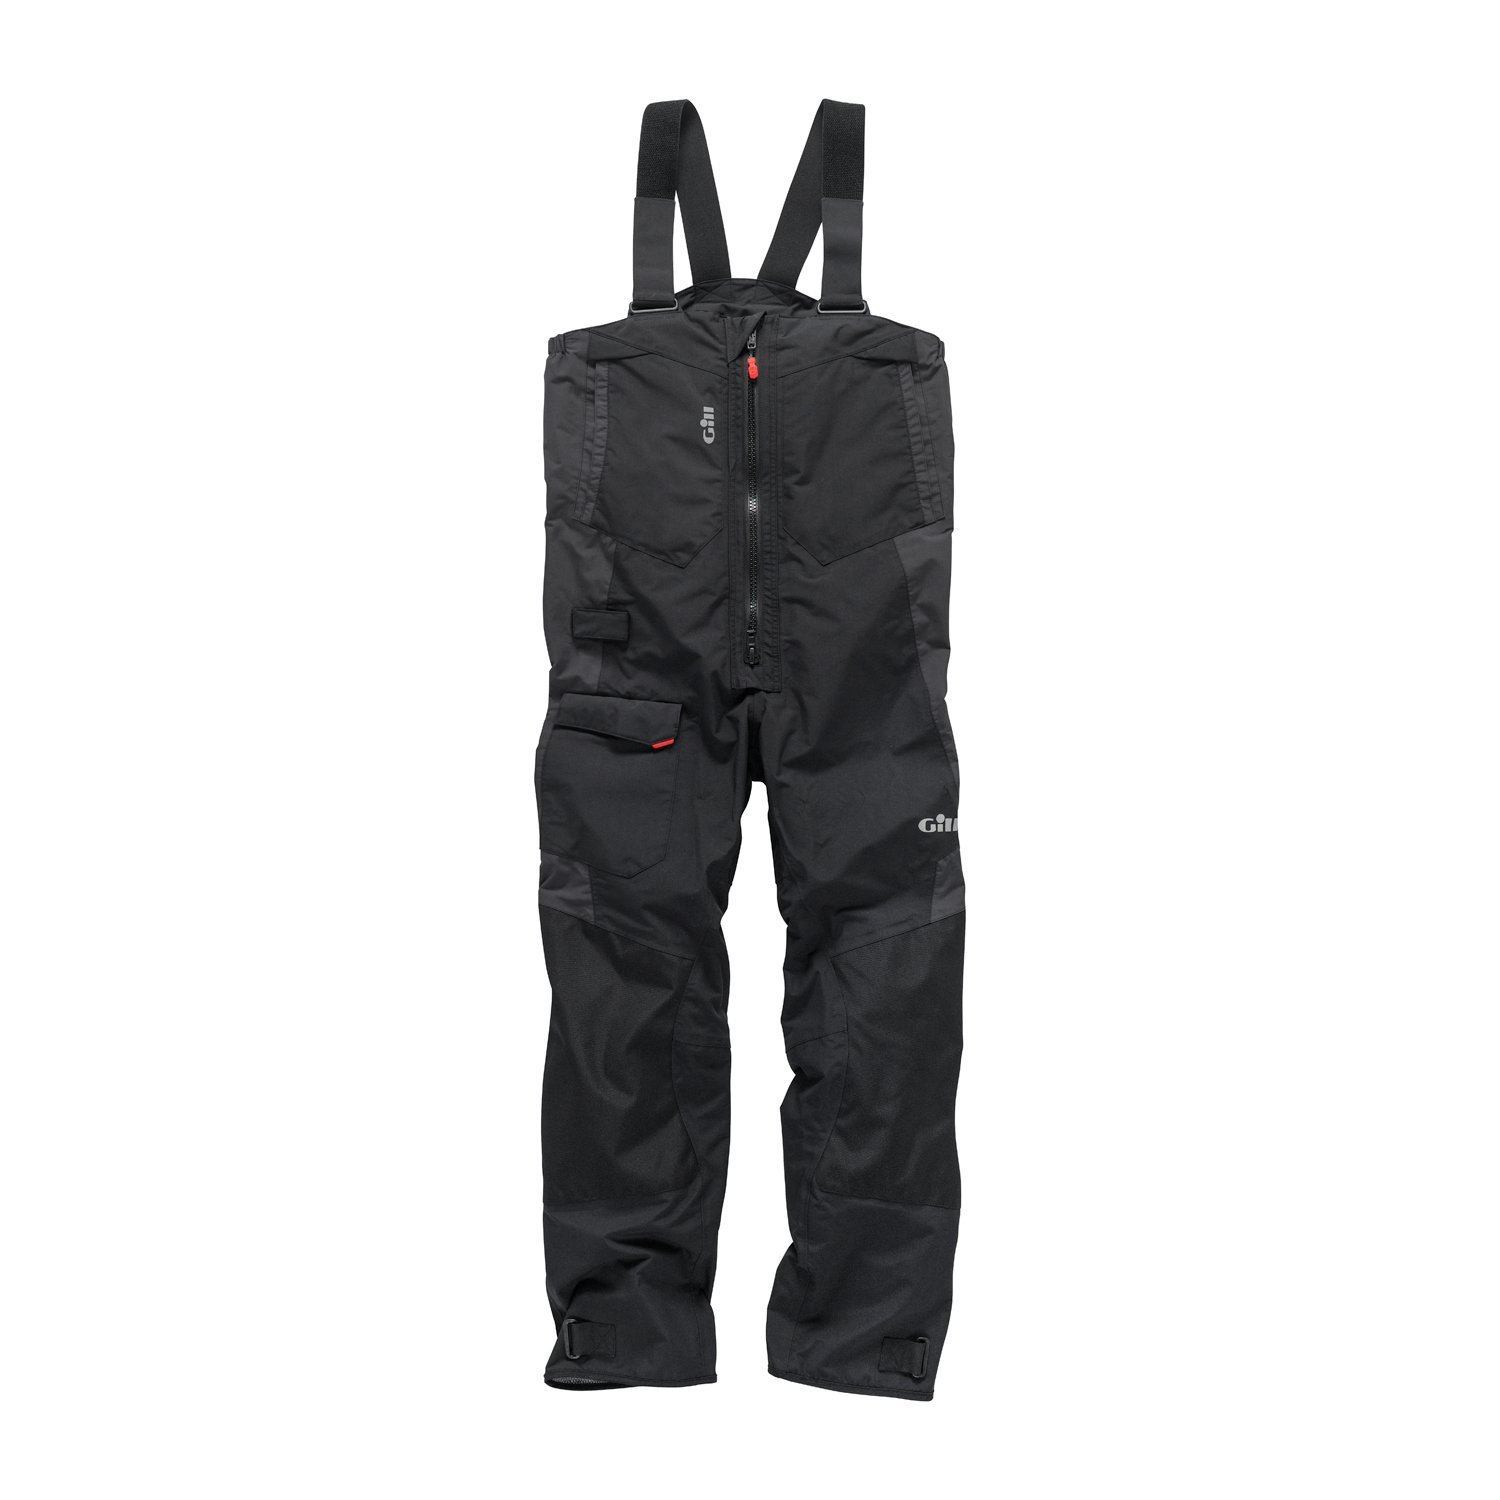 2017 Gill OS2 Trousers Graphite OS23T Sizes- - Large